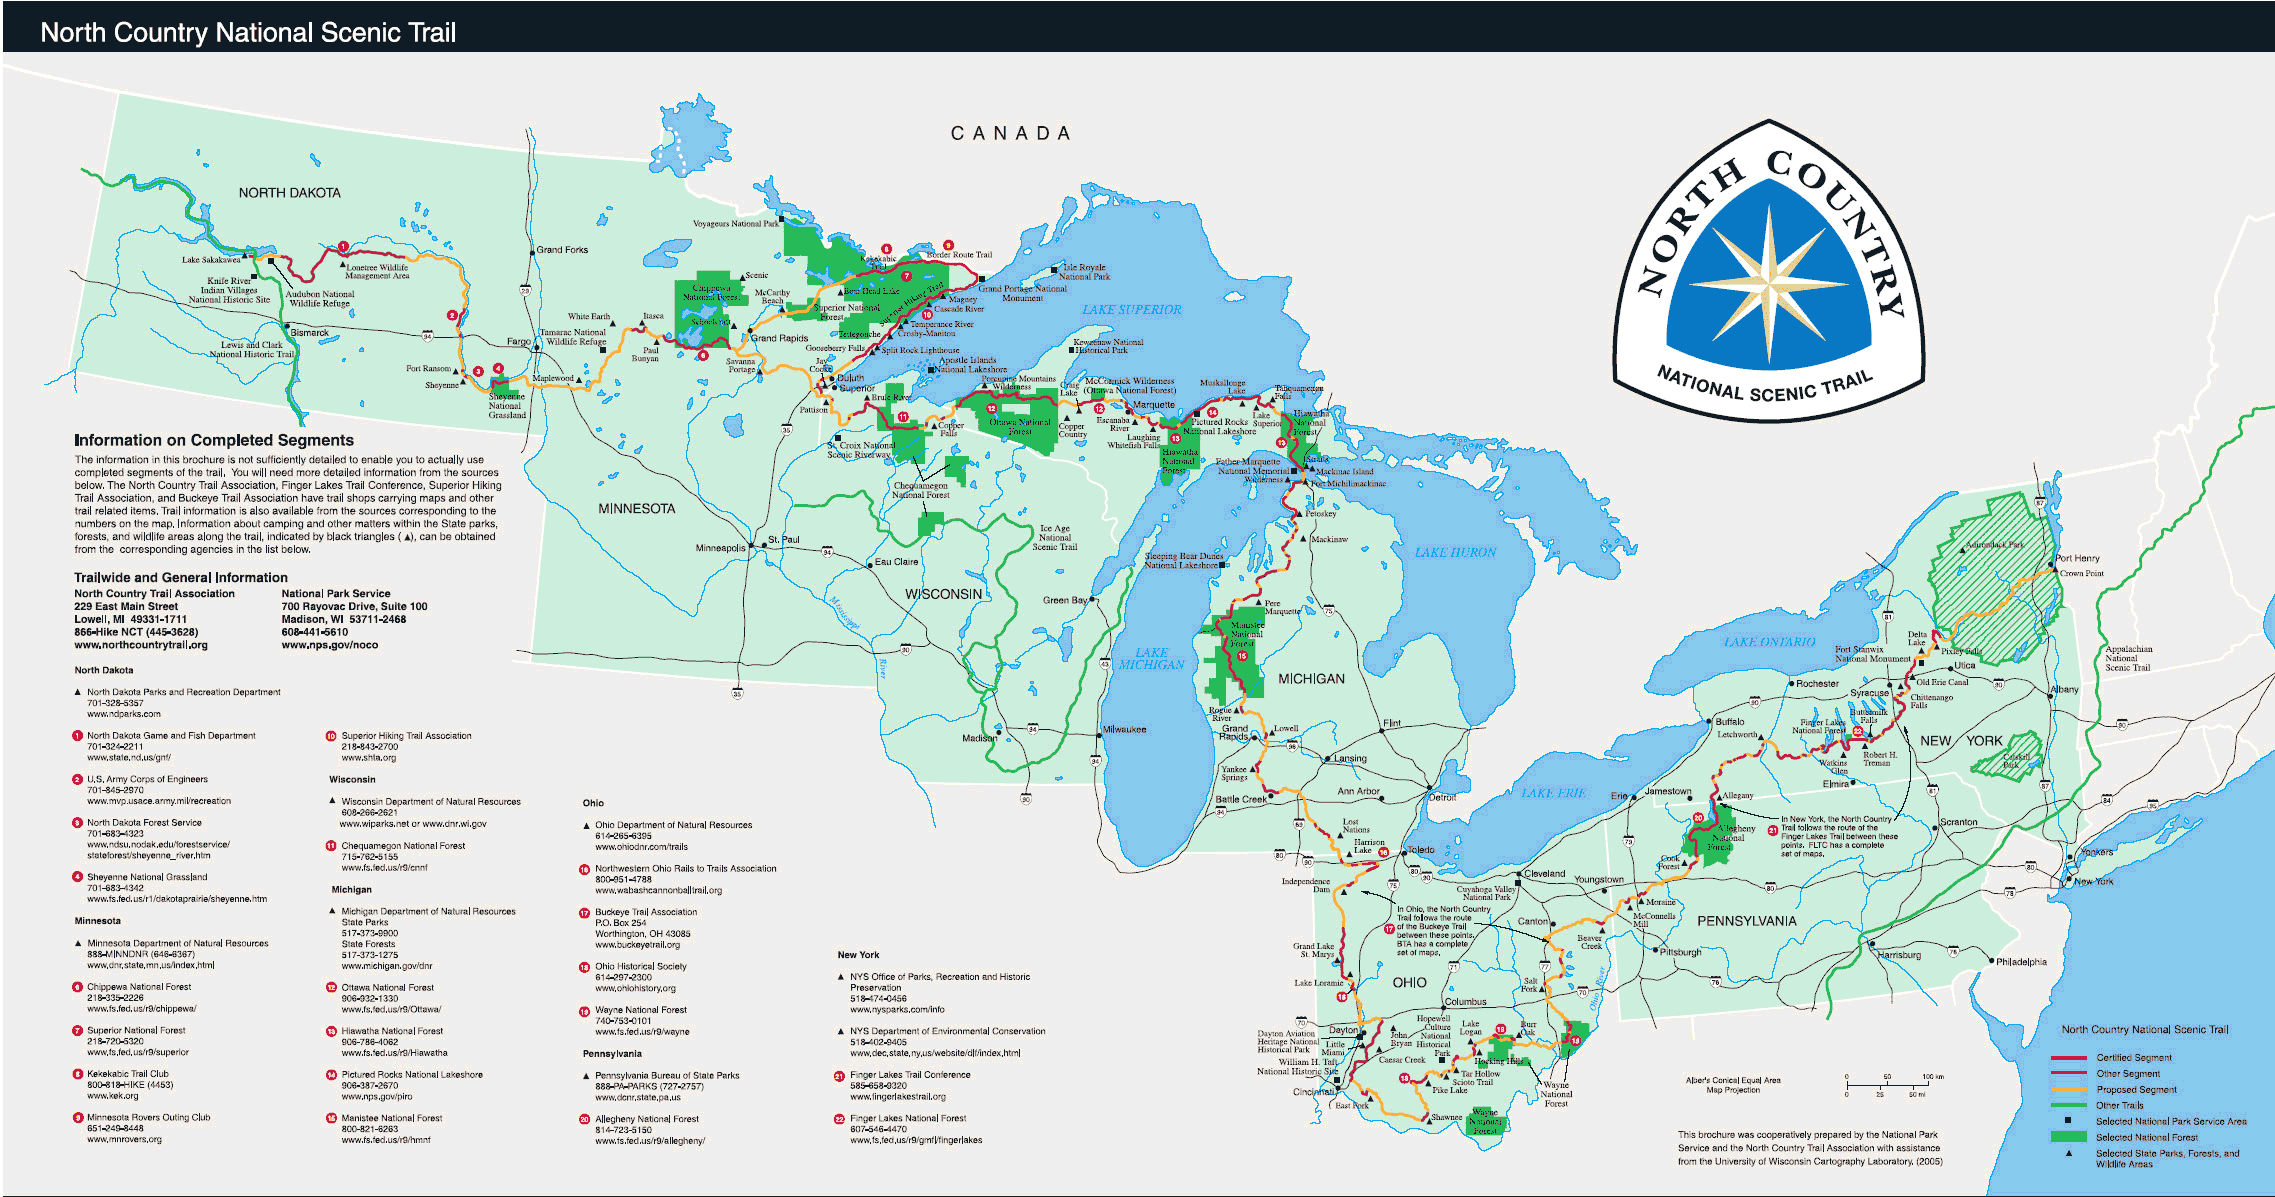 Map of the North Country National Scenic Trail